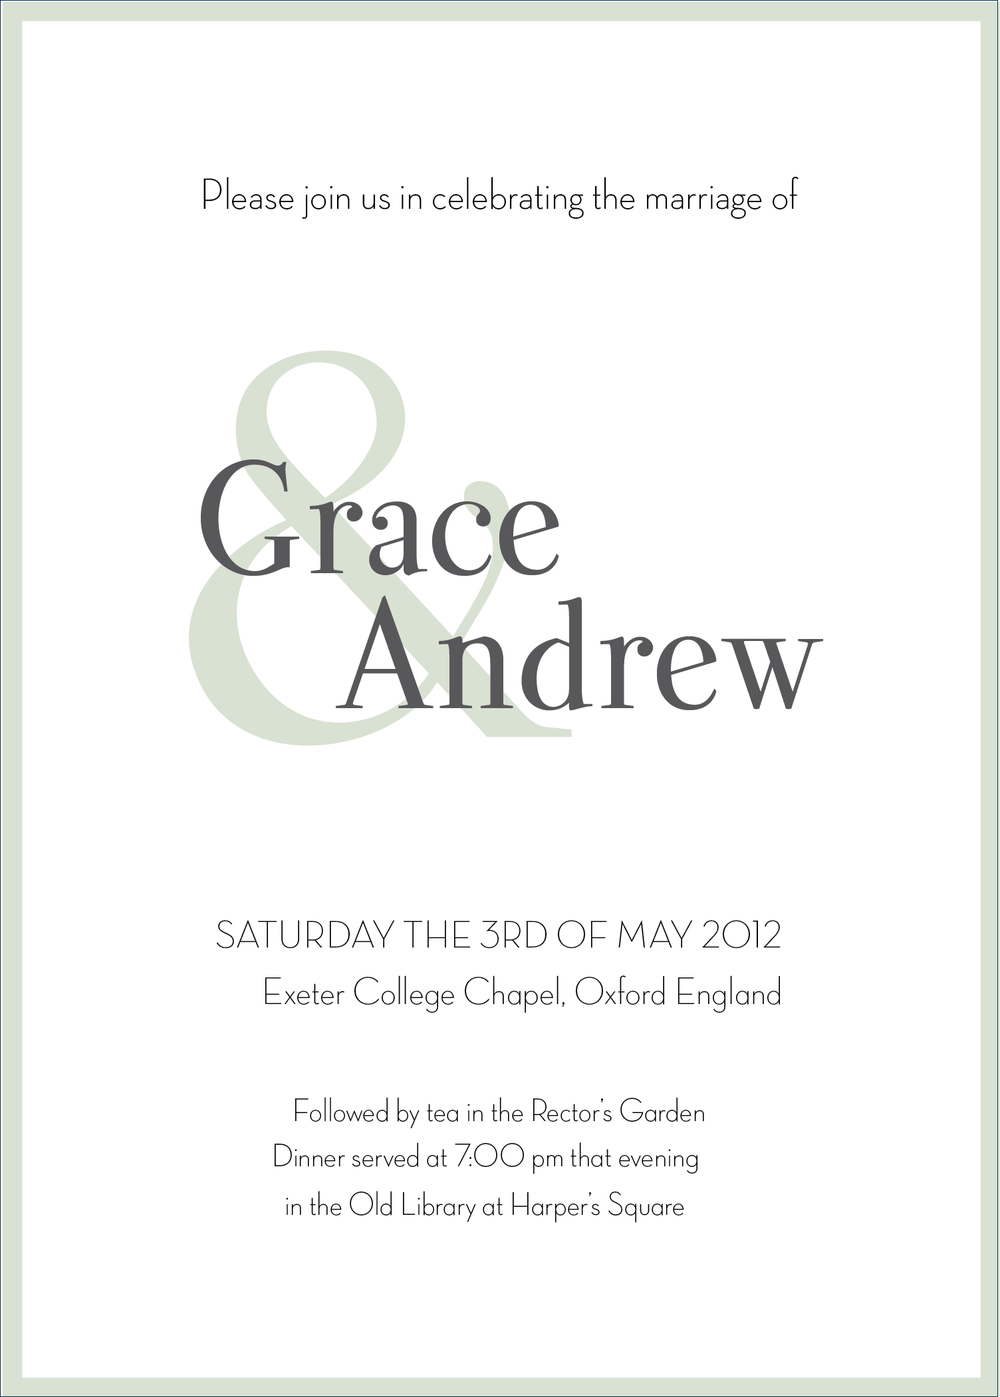 savko_Wedding Invitation_color.png